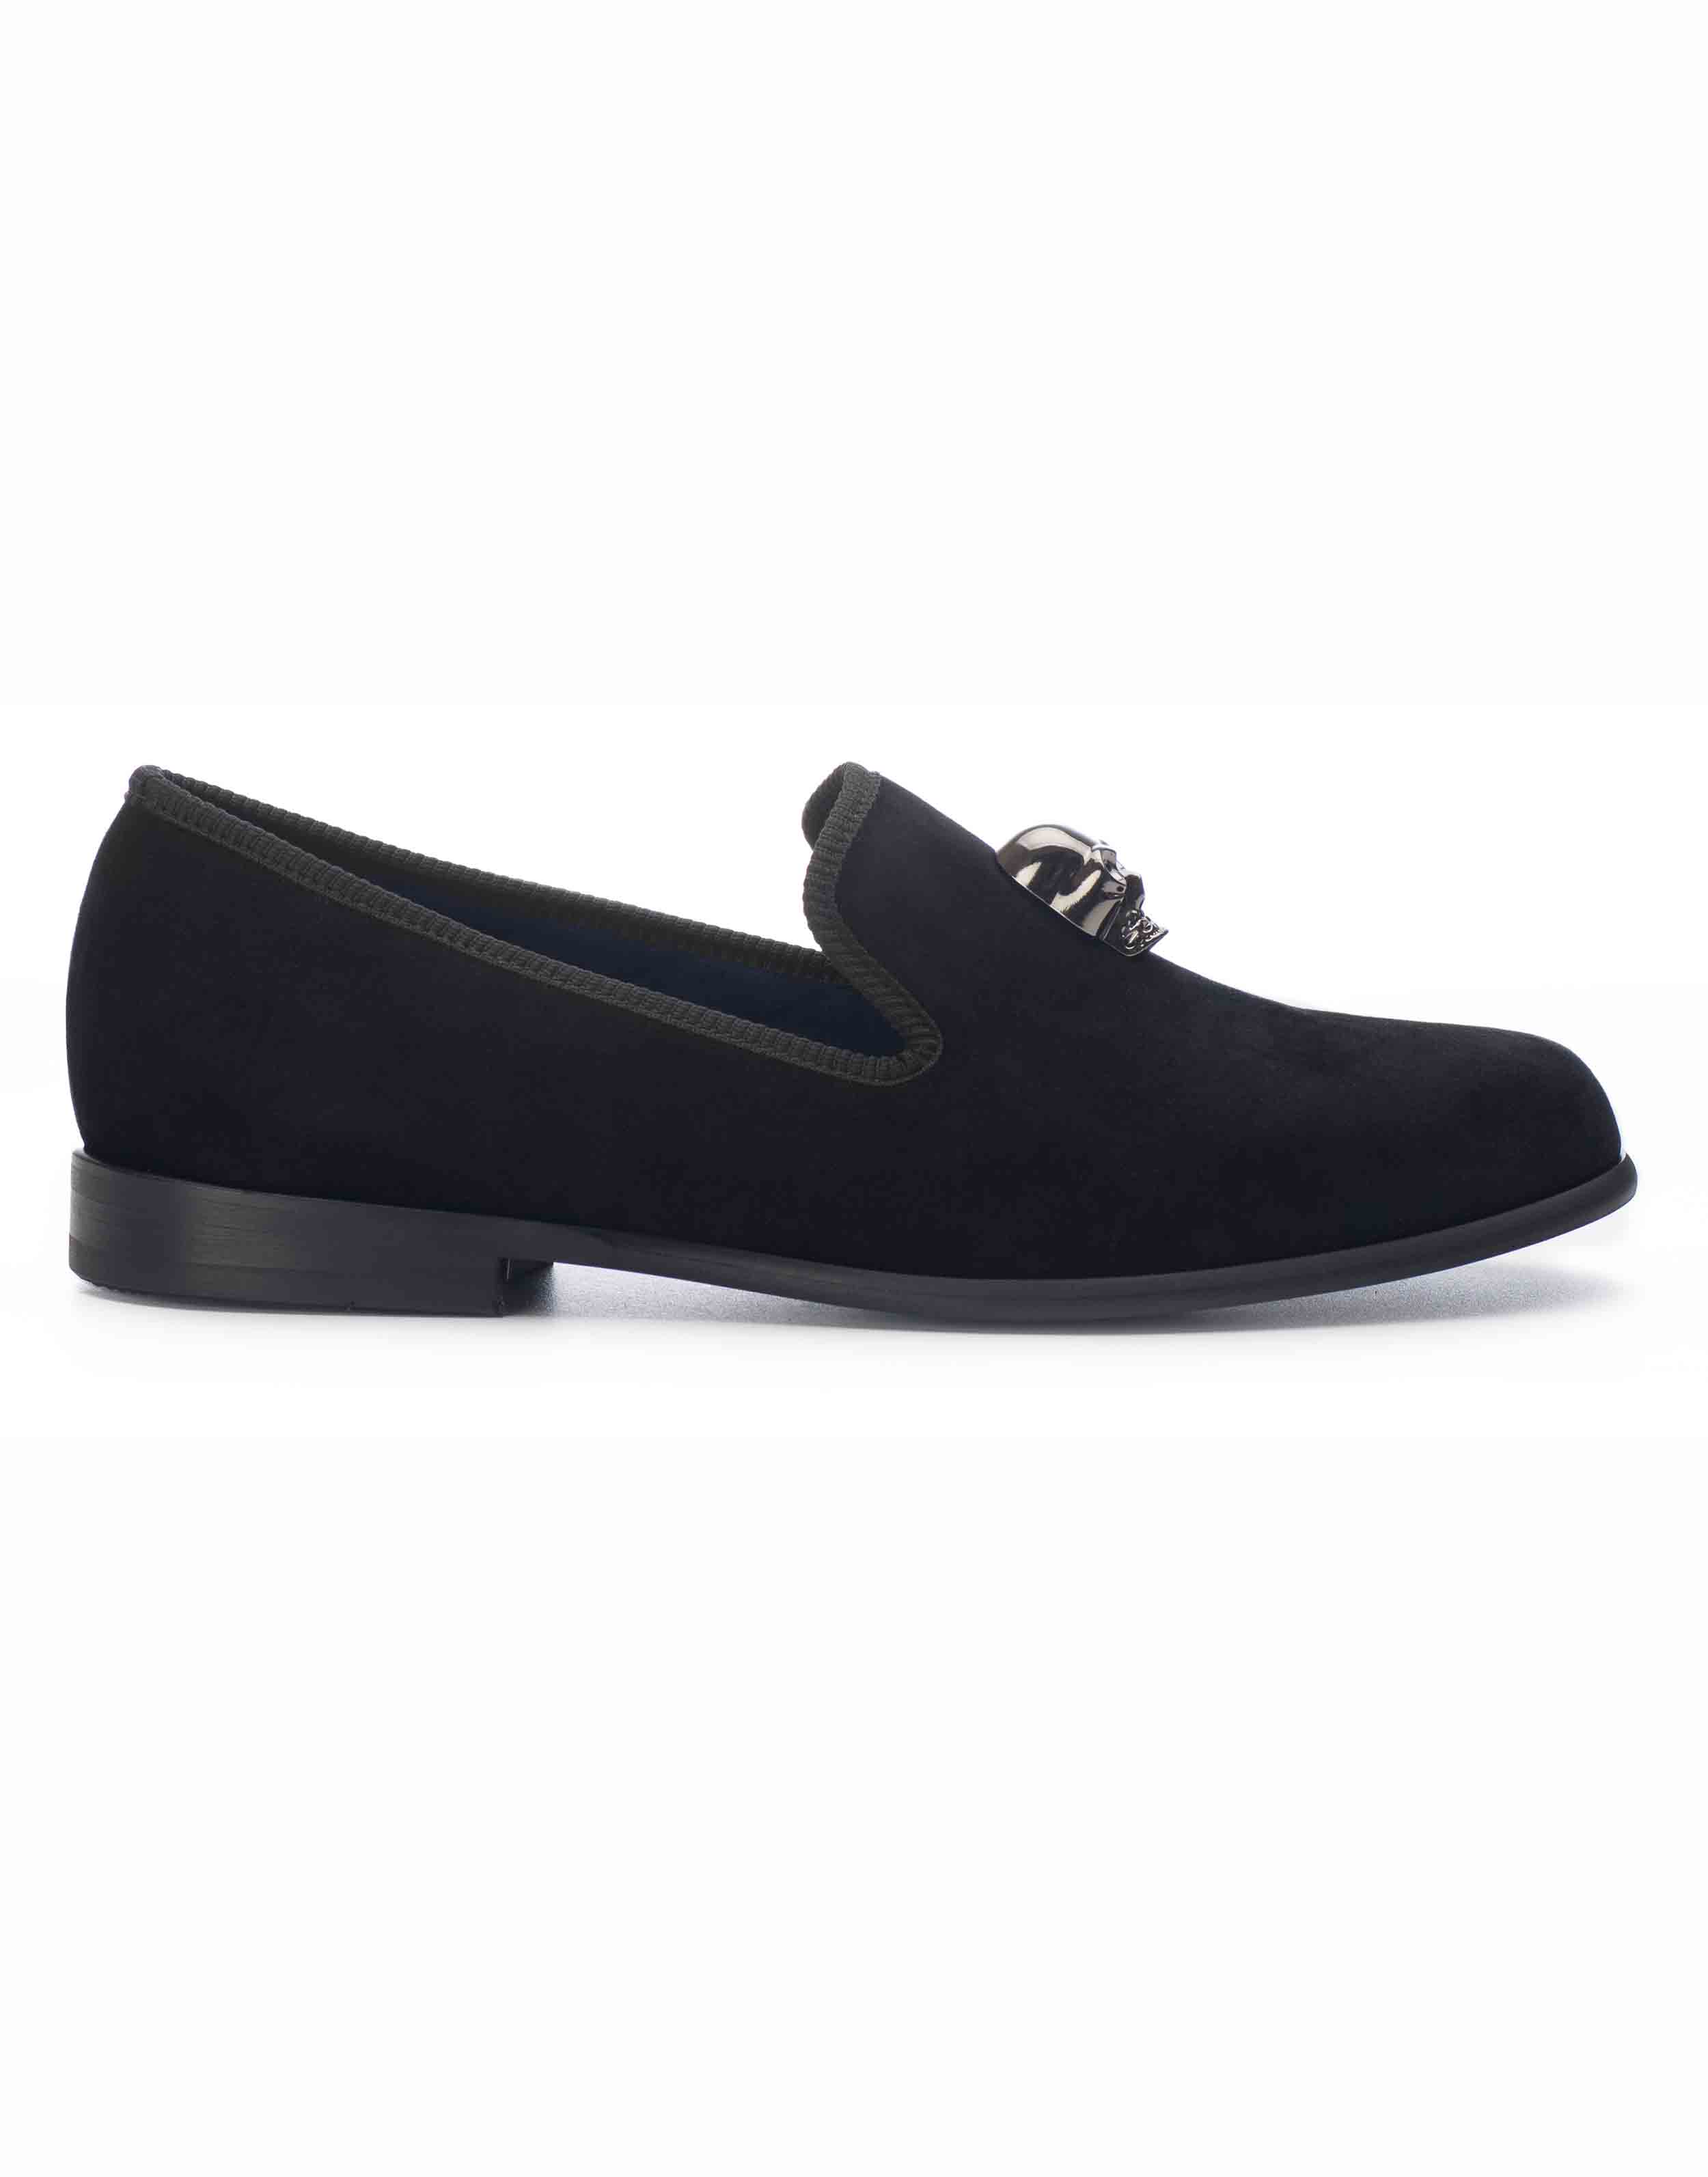 BLACK VELVET LOAFERS – SKULL1